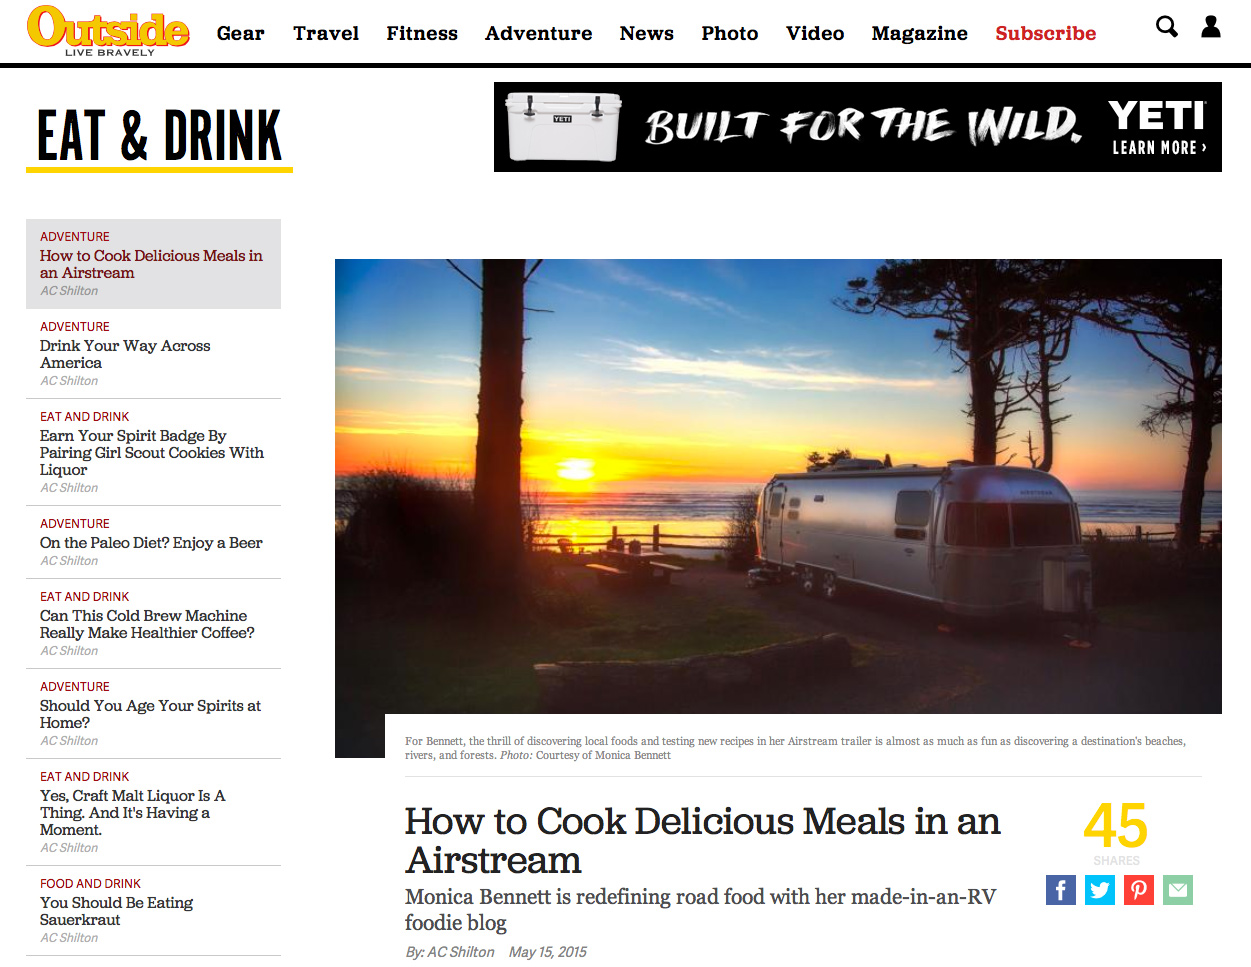 How To Cool Delicious Meals in an Airstream via J5MM.com // #OutsideMagazine #Airstream